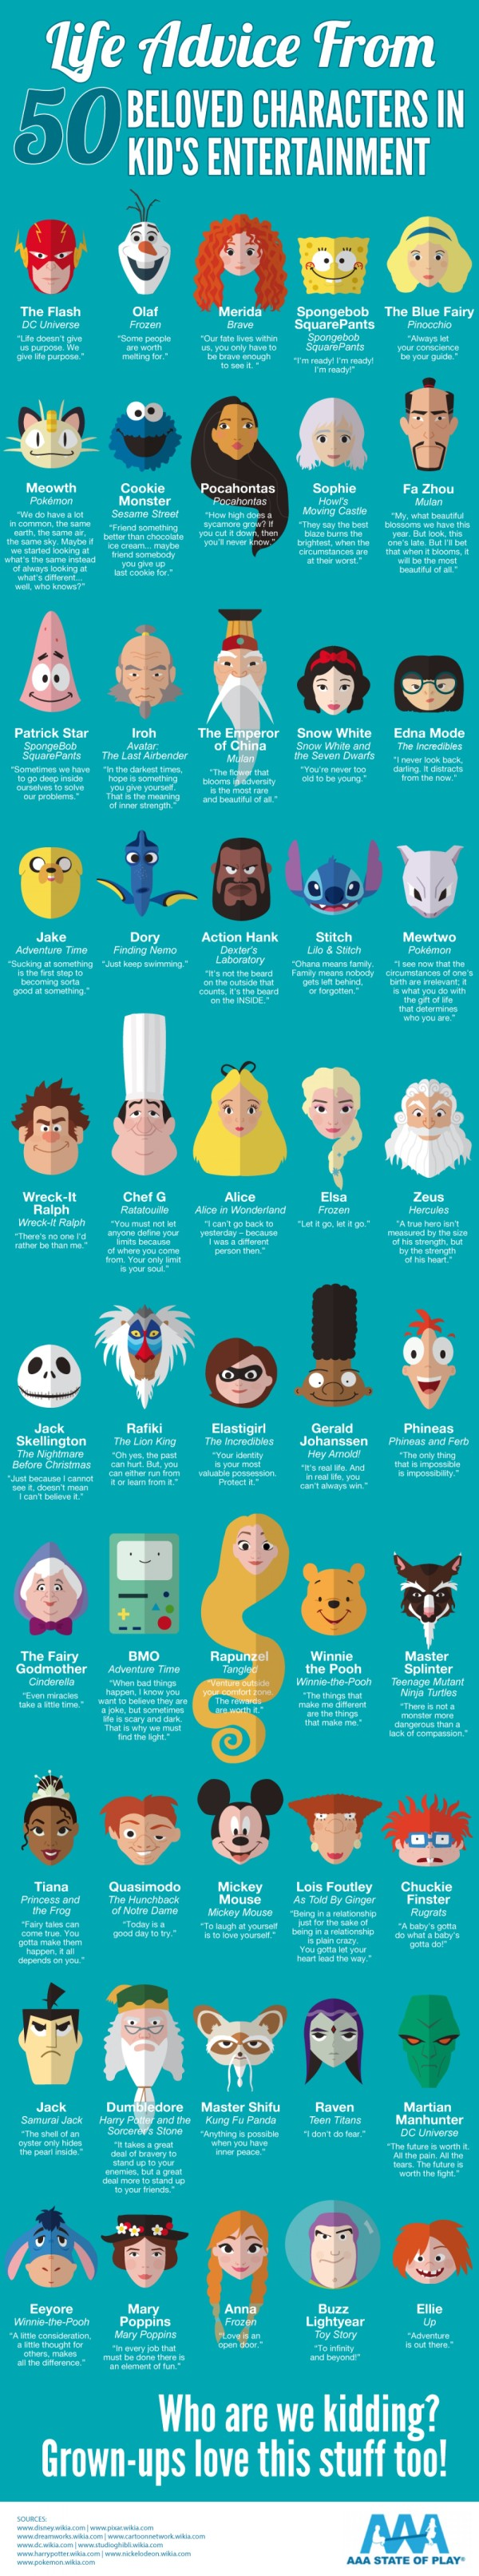 life-advice-from-50-beloved-characters-in-kids-entertainment_55411a4029d99_w1500